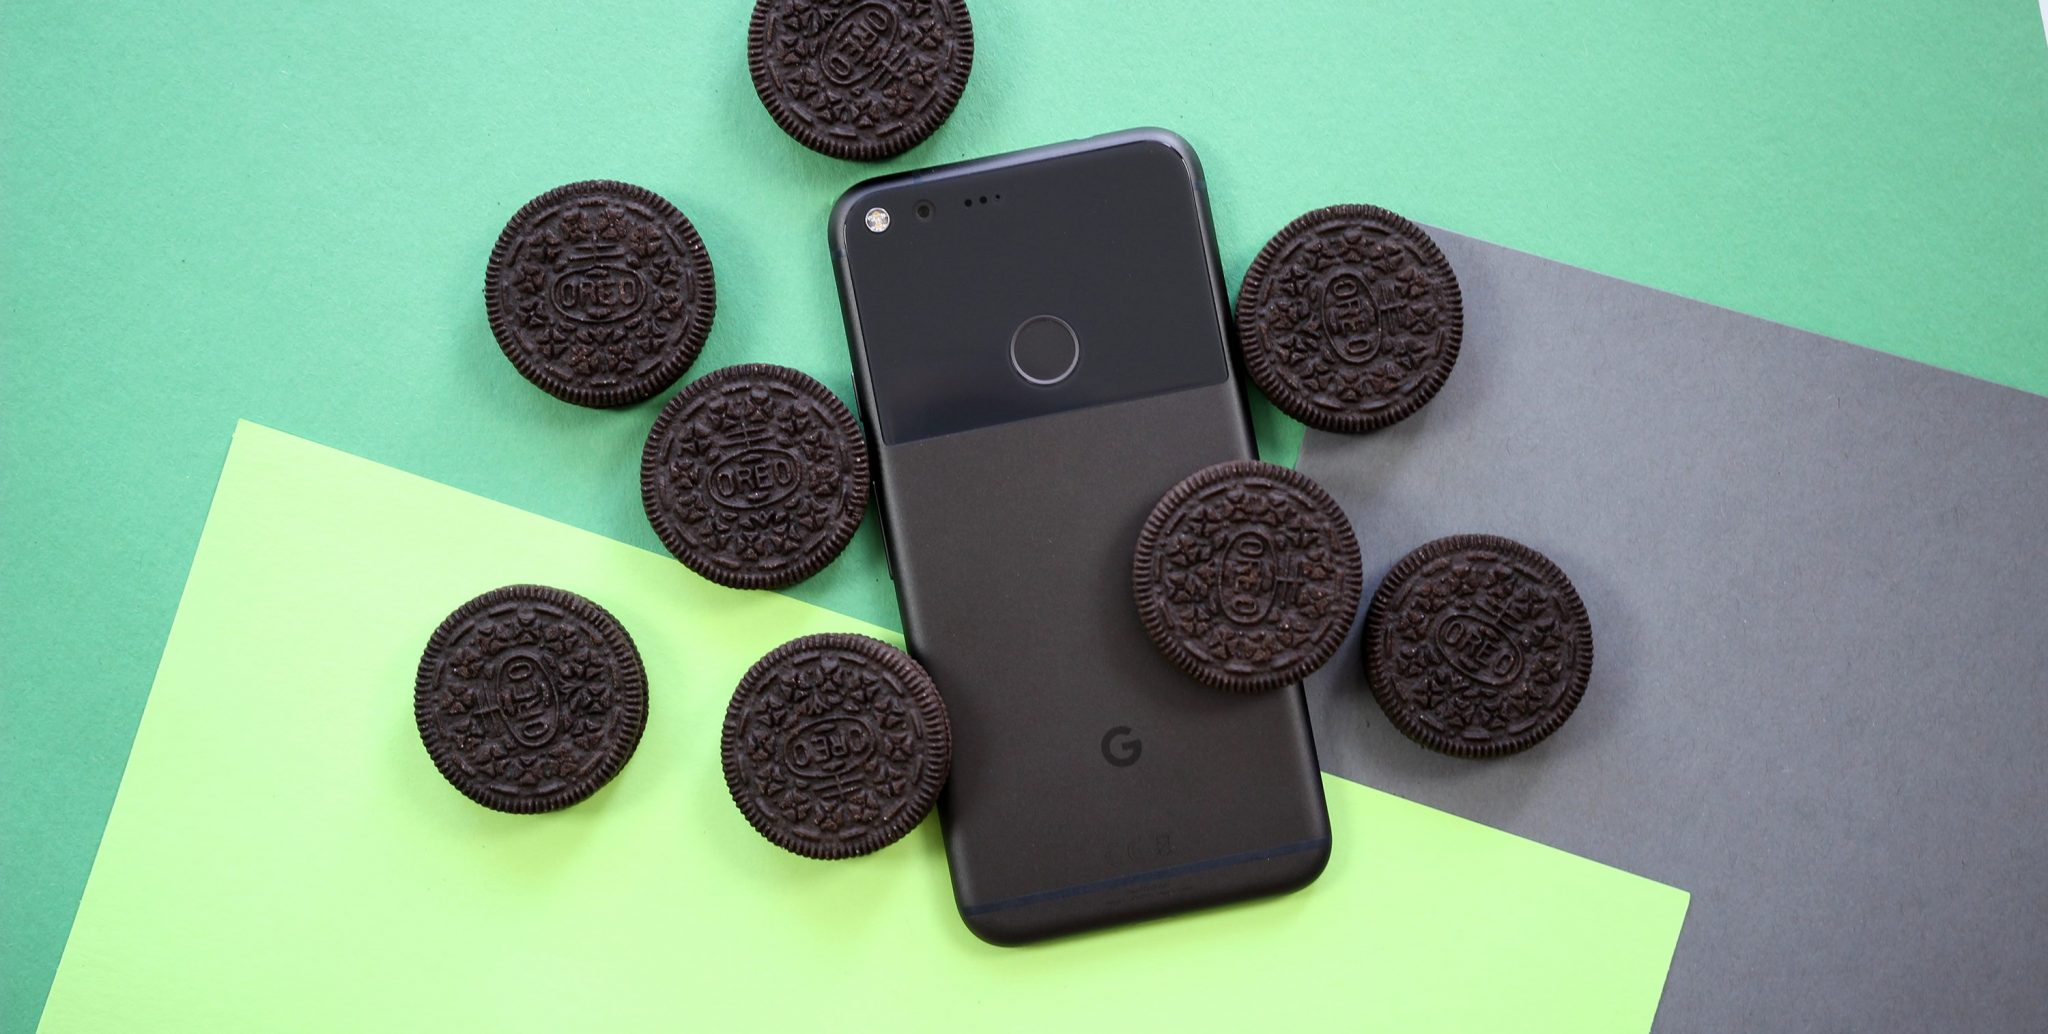 Google Pixel Devices Will Get Official Android O Update in August 8